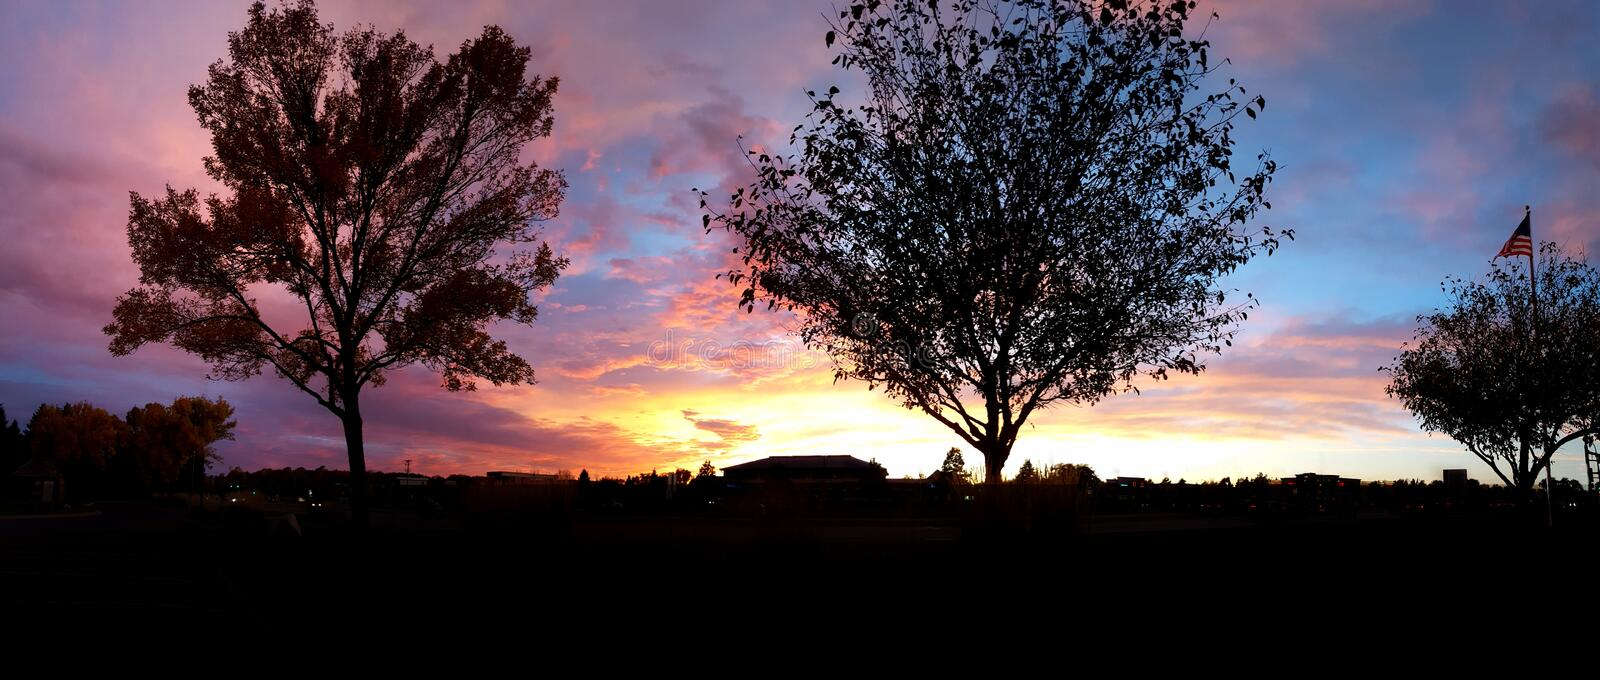 Colorful Sun Set over the city with Tree Silhouettes royalty free stock image